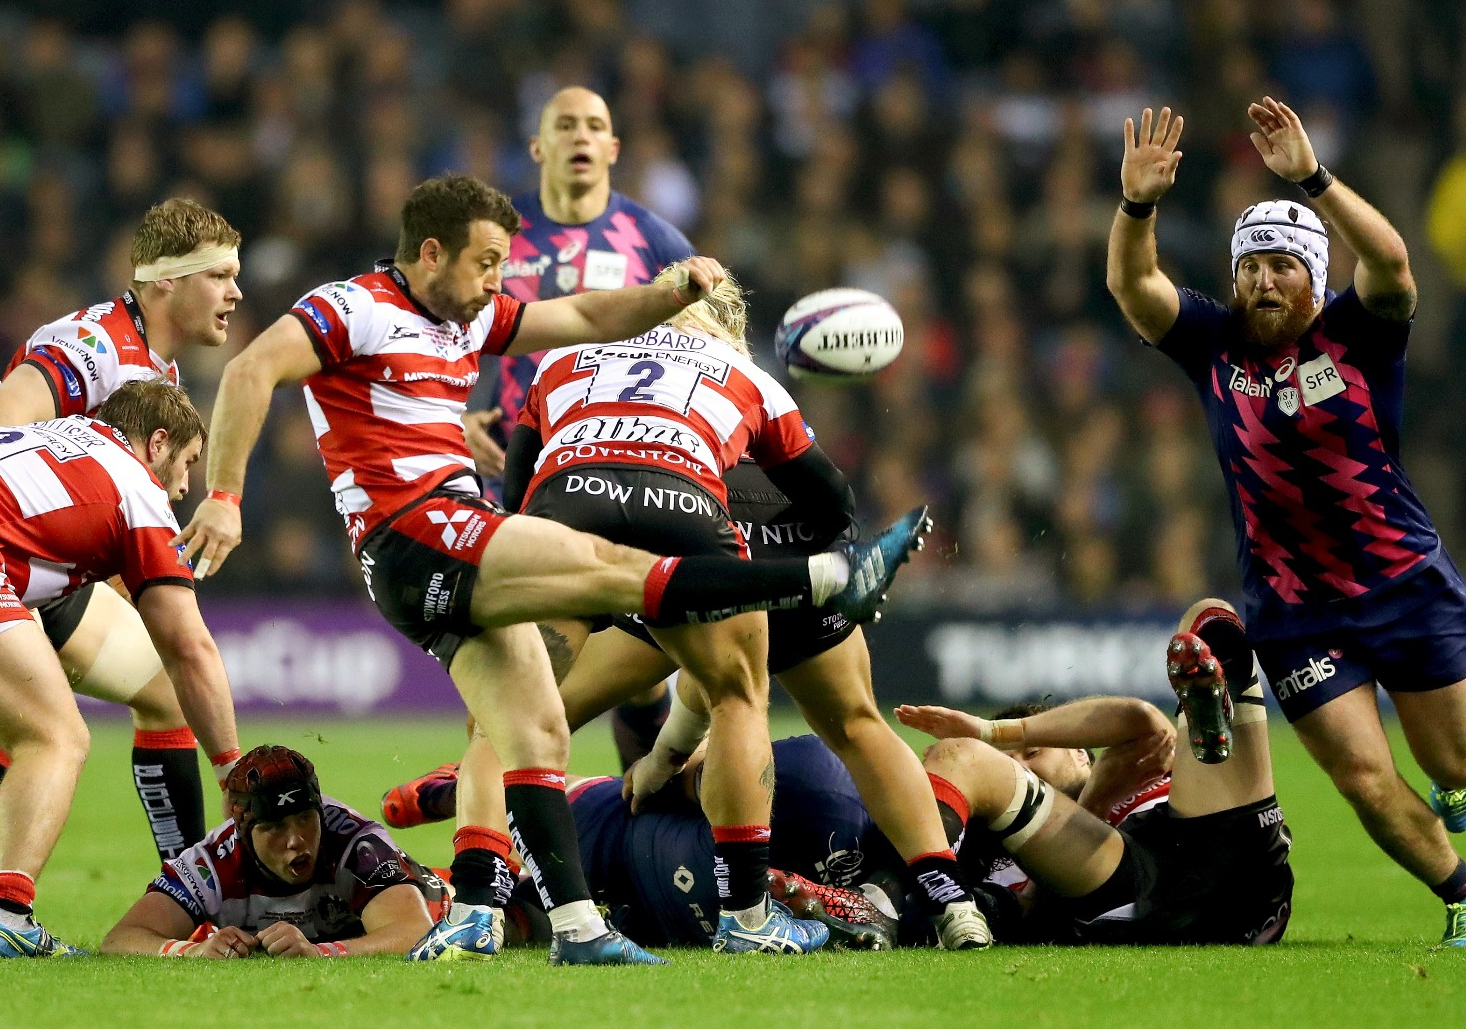 LionsWatch: Moriarty scores try as Gloucester lose Challenge Cup final